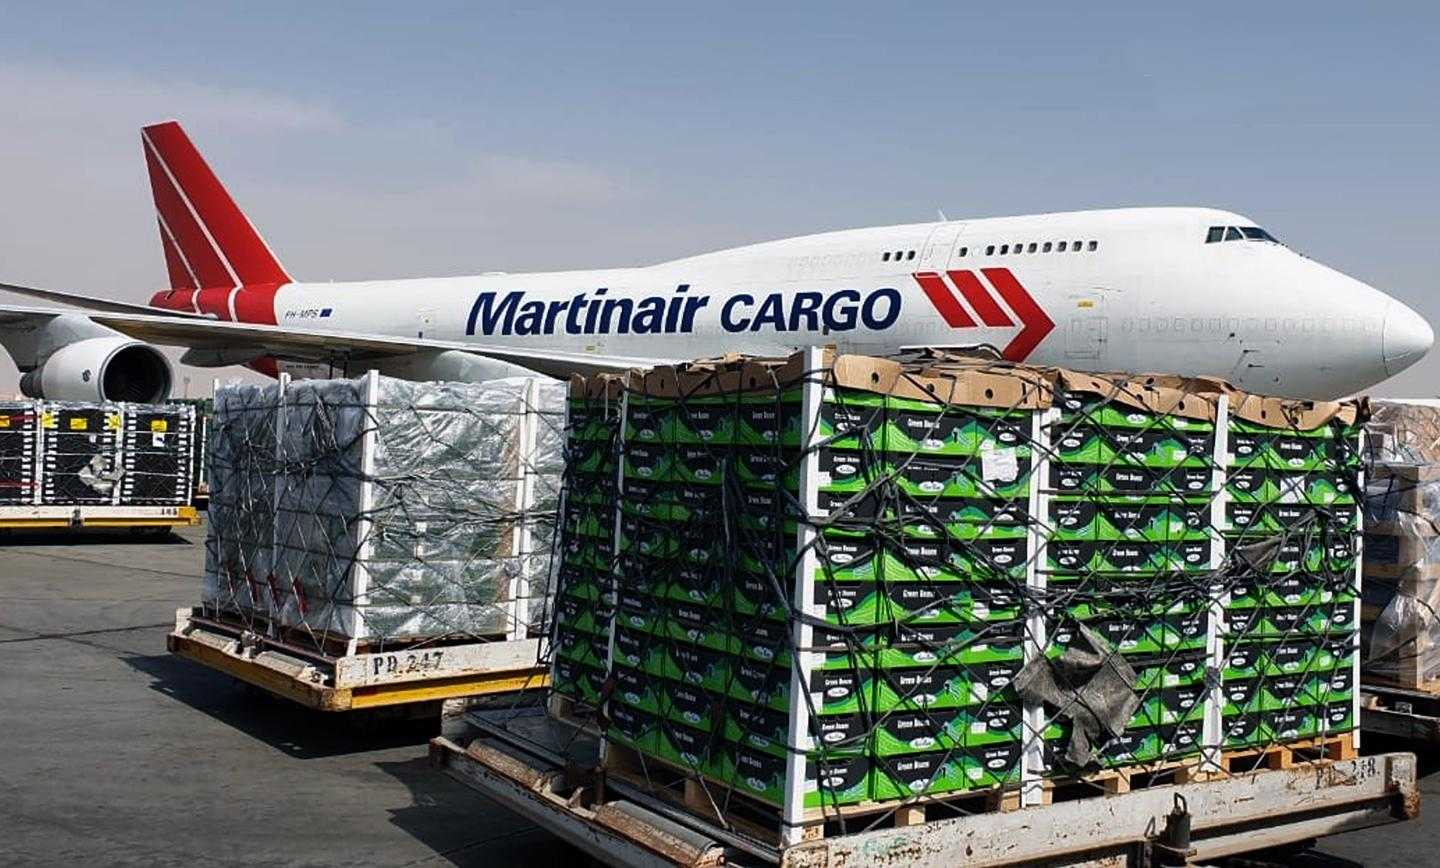 Martinair Cargo flies a weekly freighter on the Amsterdam-Cairo route carrying fresh, pharma and aerospace